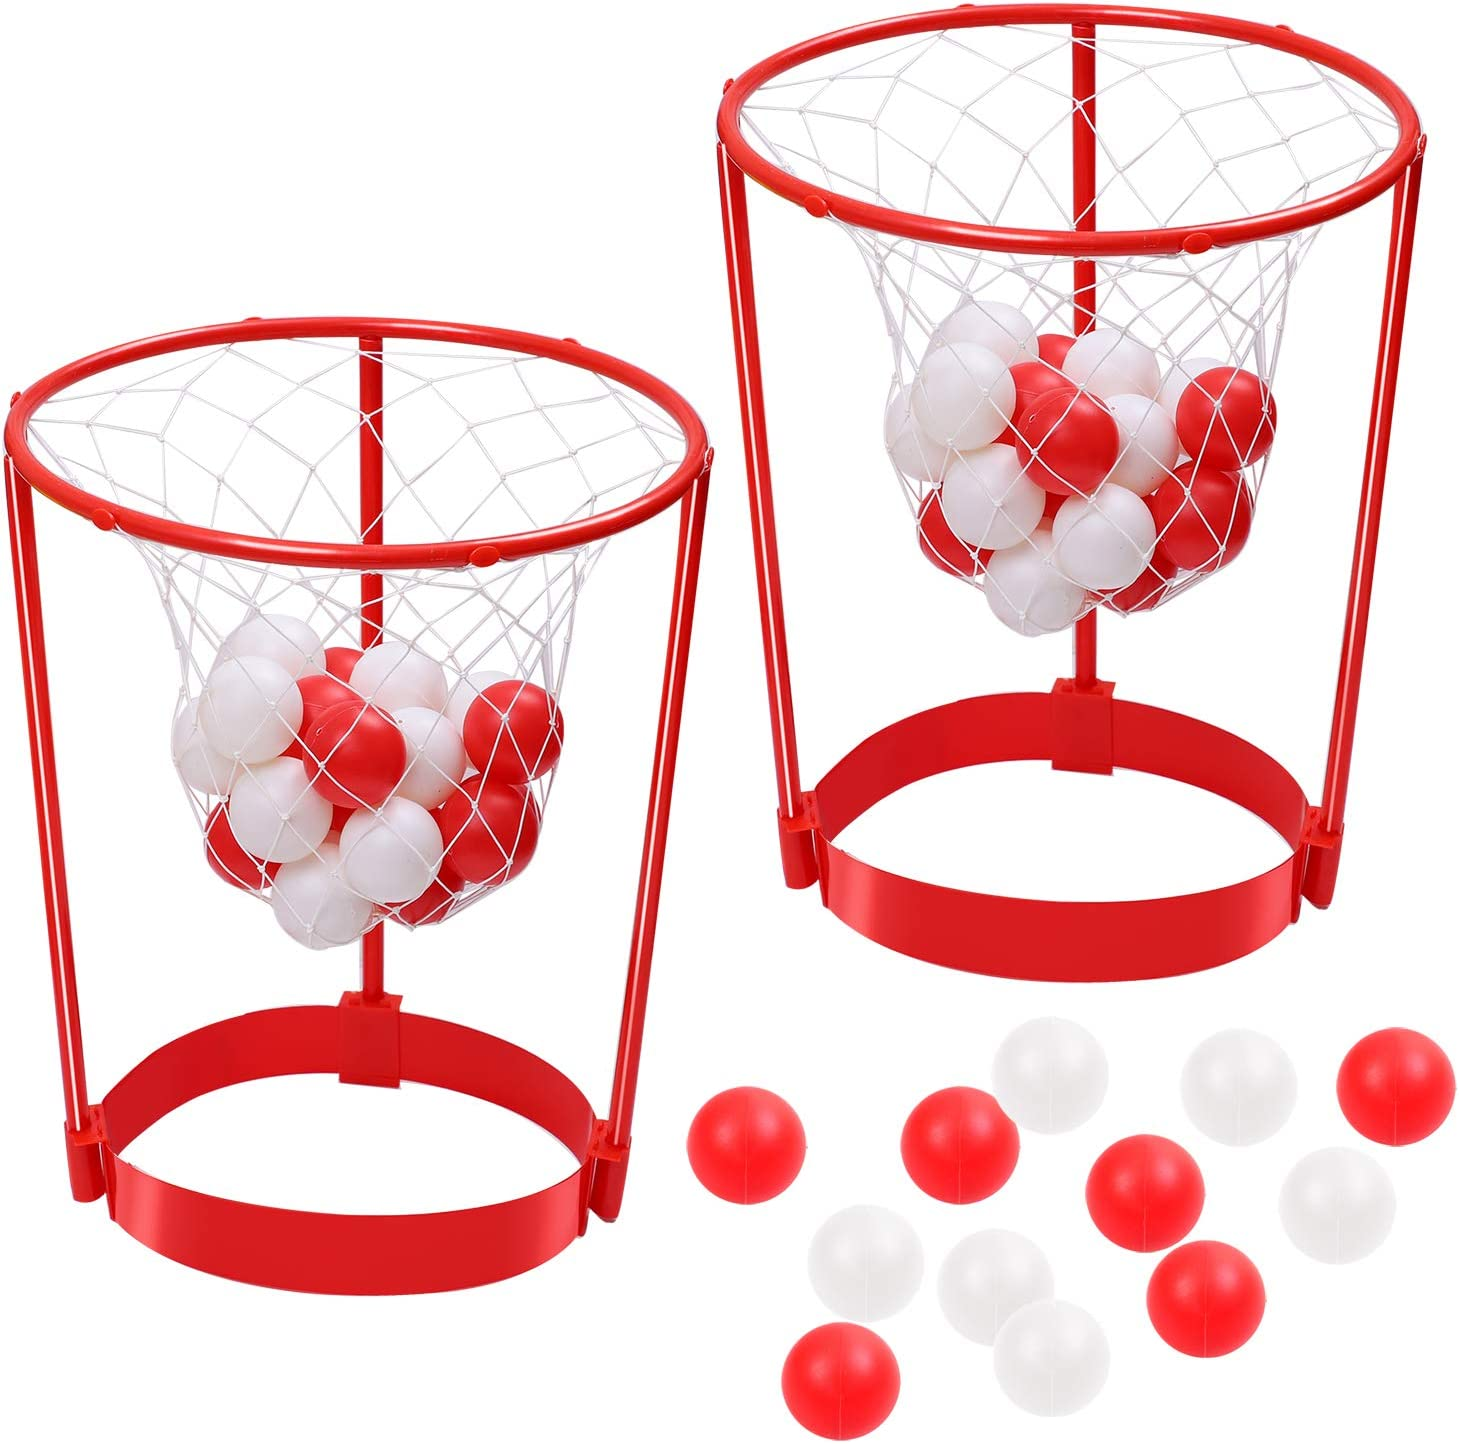 Aneco 2 Set Christmas Head Hoop Basketball Game for Christmas Party Game Gifts Basket Headband Ball Adjustable Basket Net Headband with 20 Balls